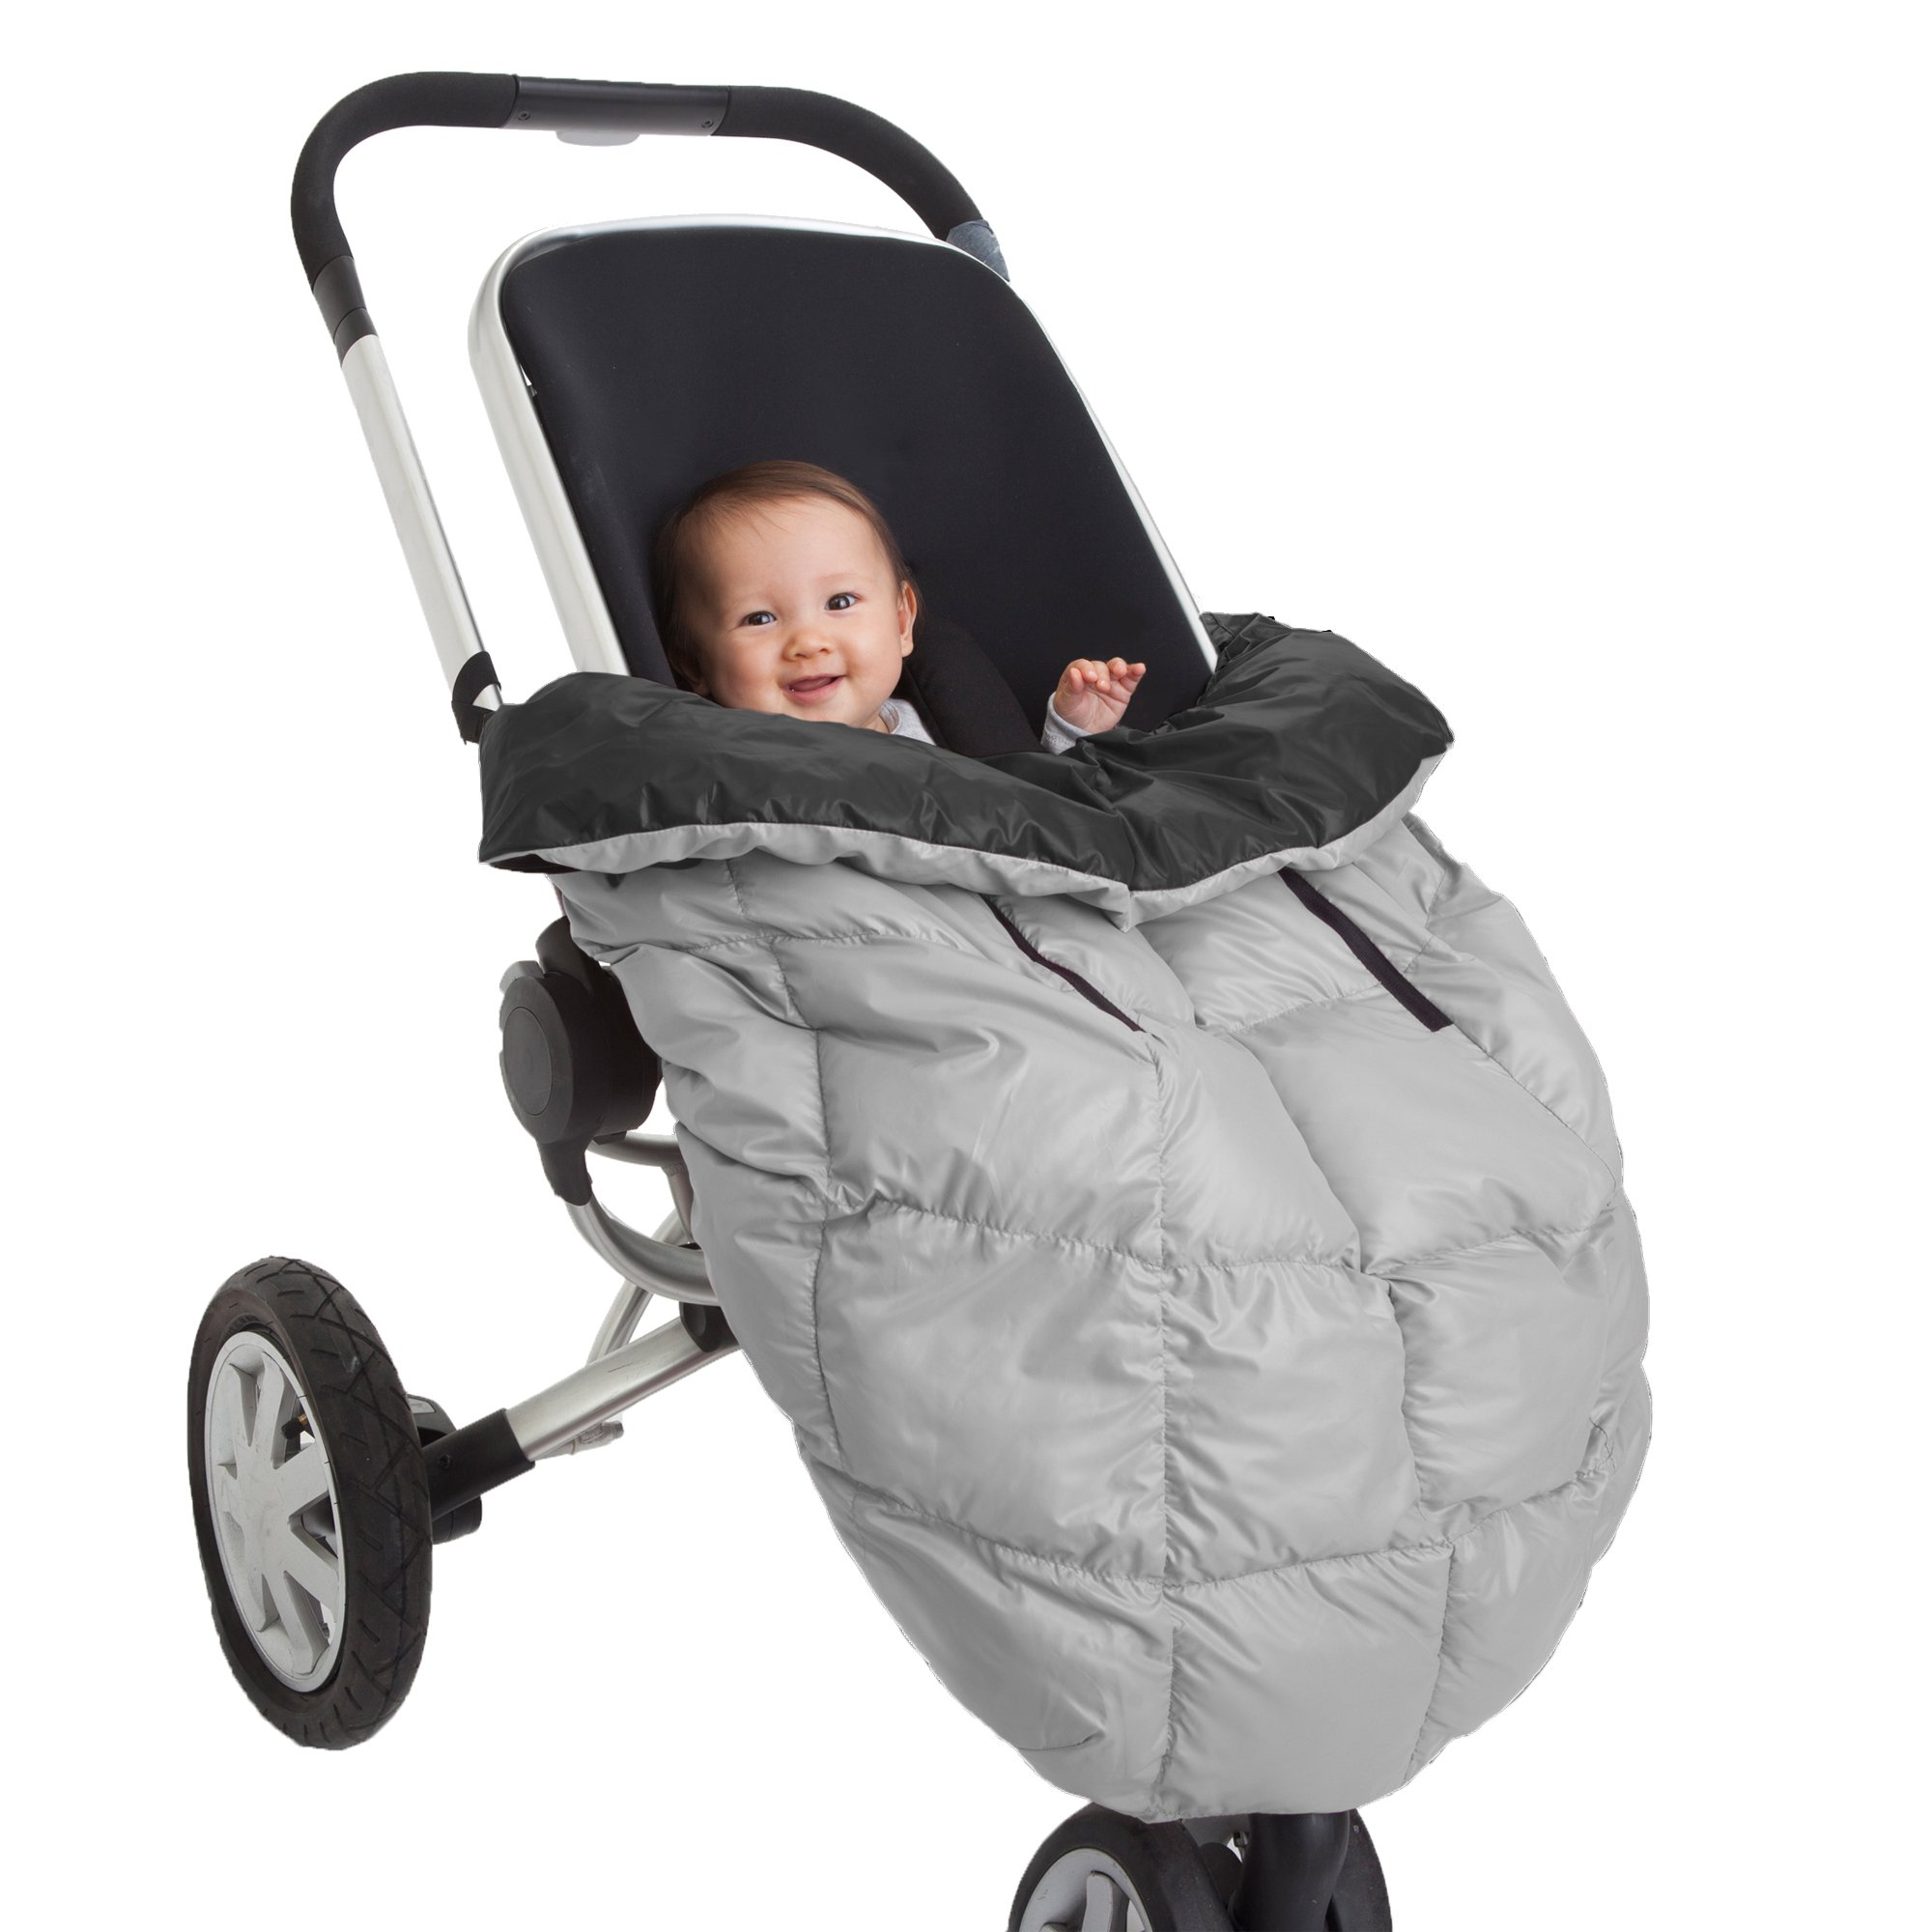 7AM Enfant, Cygnet Cover: 3-in-1 Cover for The Baby Carrier, Car-Seat and Stroller, Black/Gray